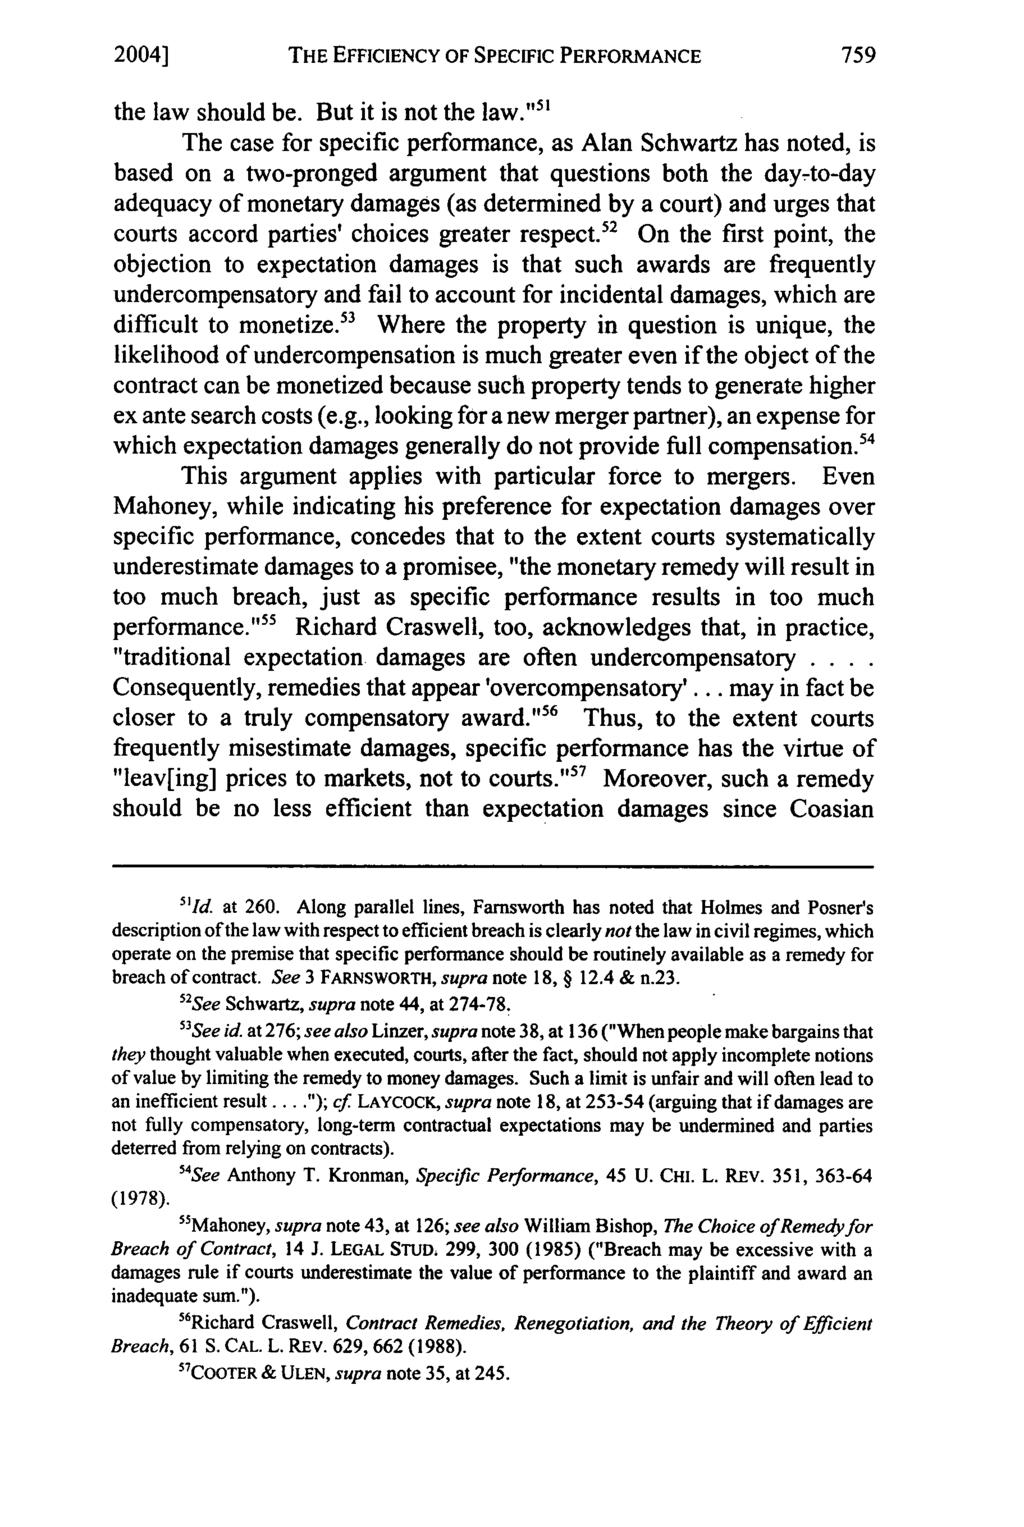 2004] THE EFFICIENCY OF SPECIFIC PERFORMANCE the law should be. But it is not the law.